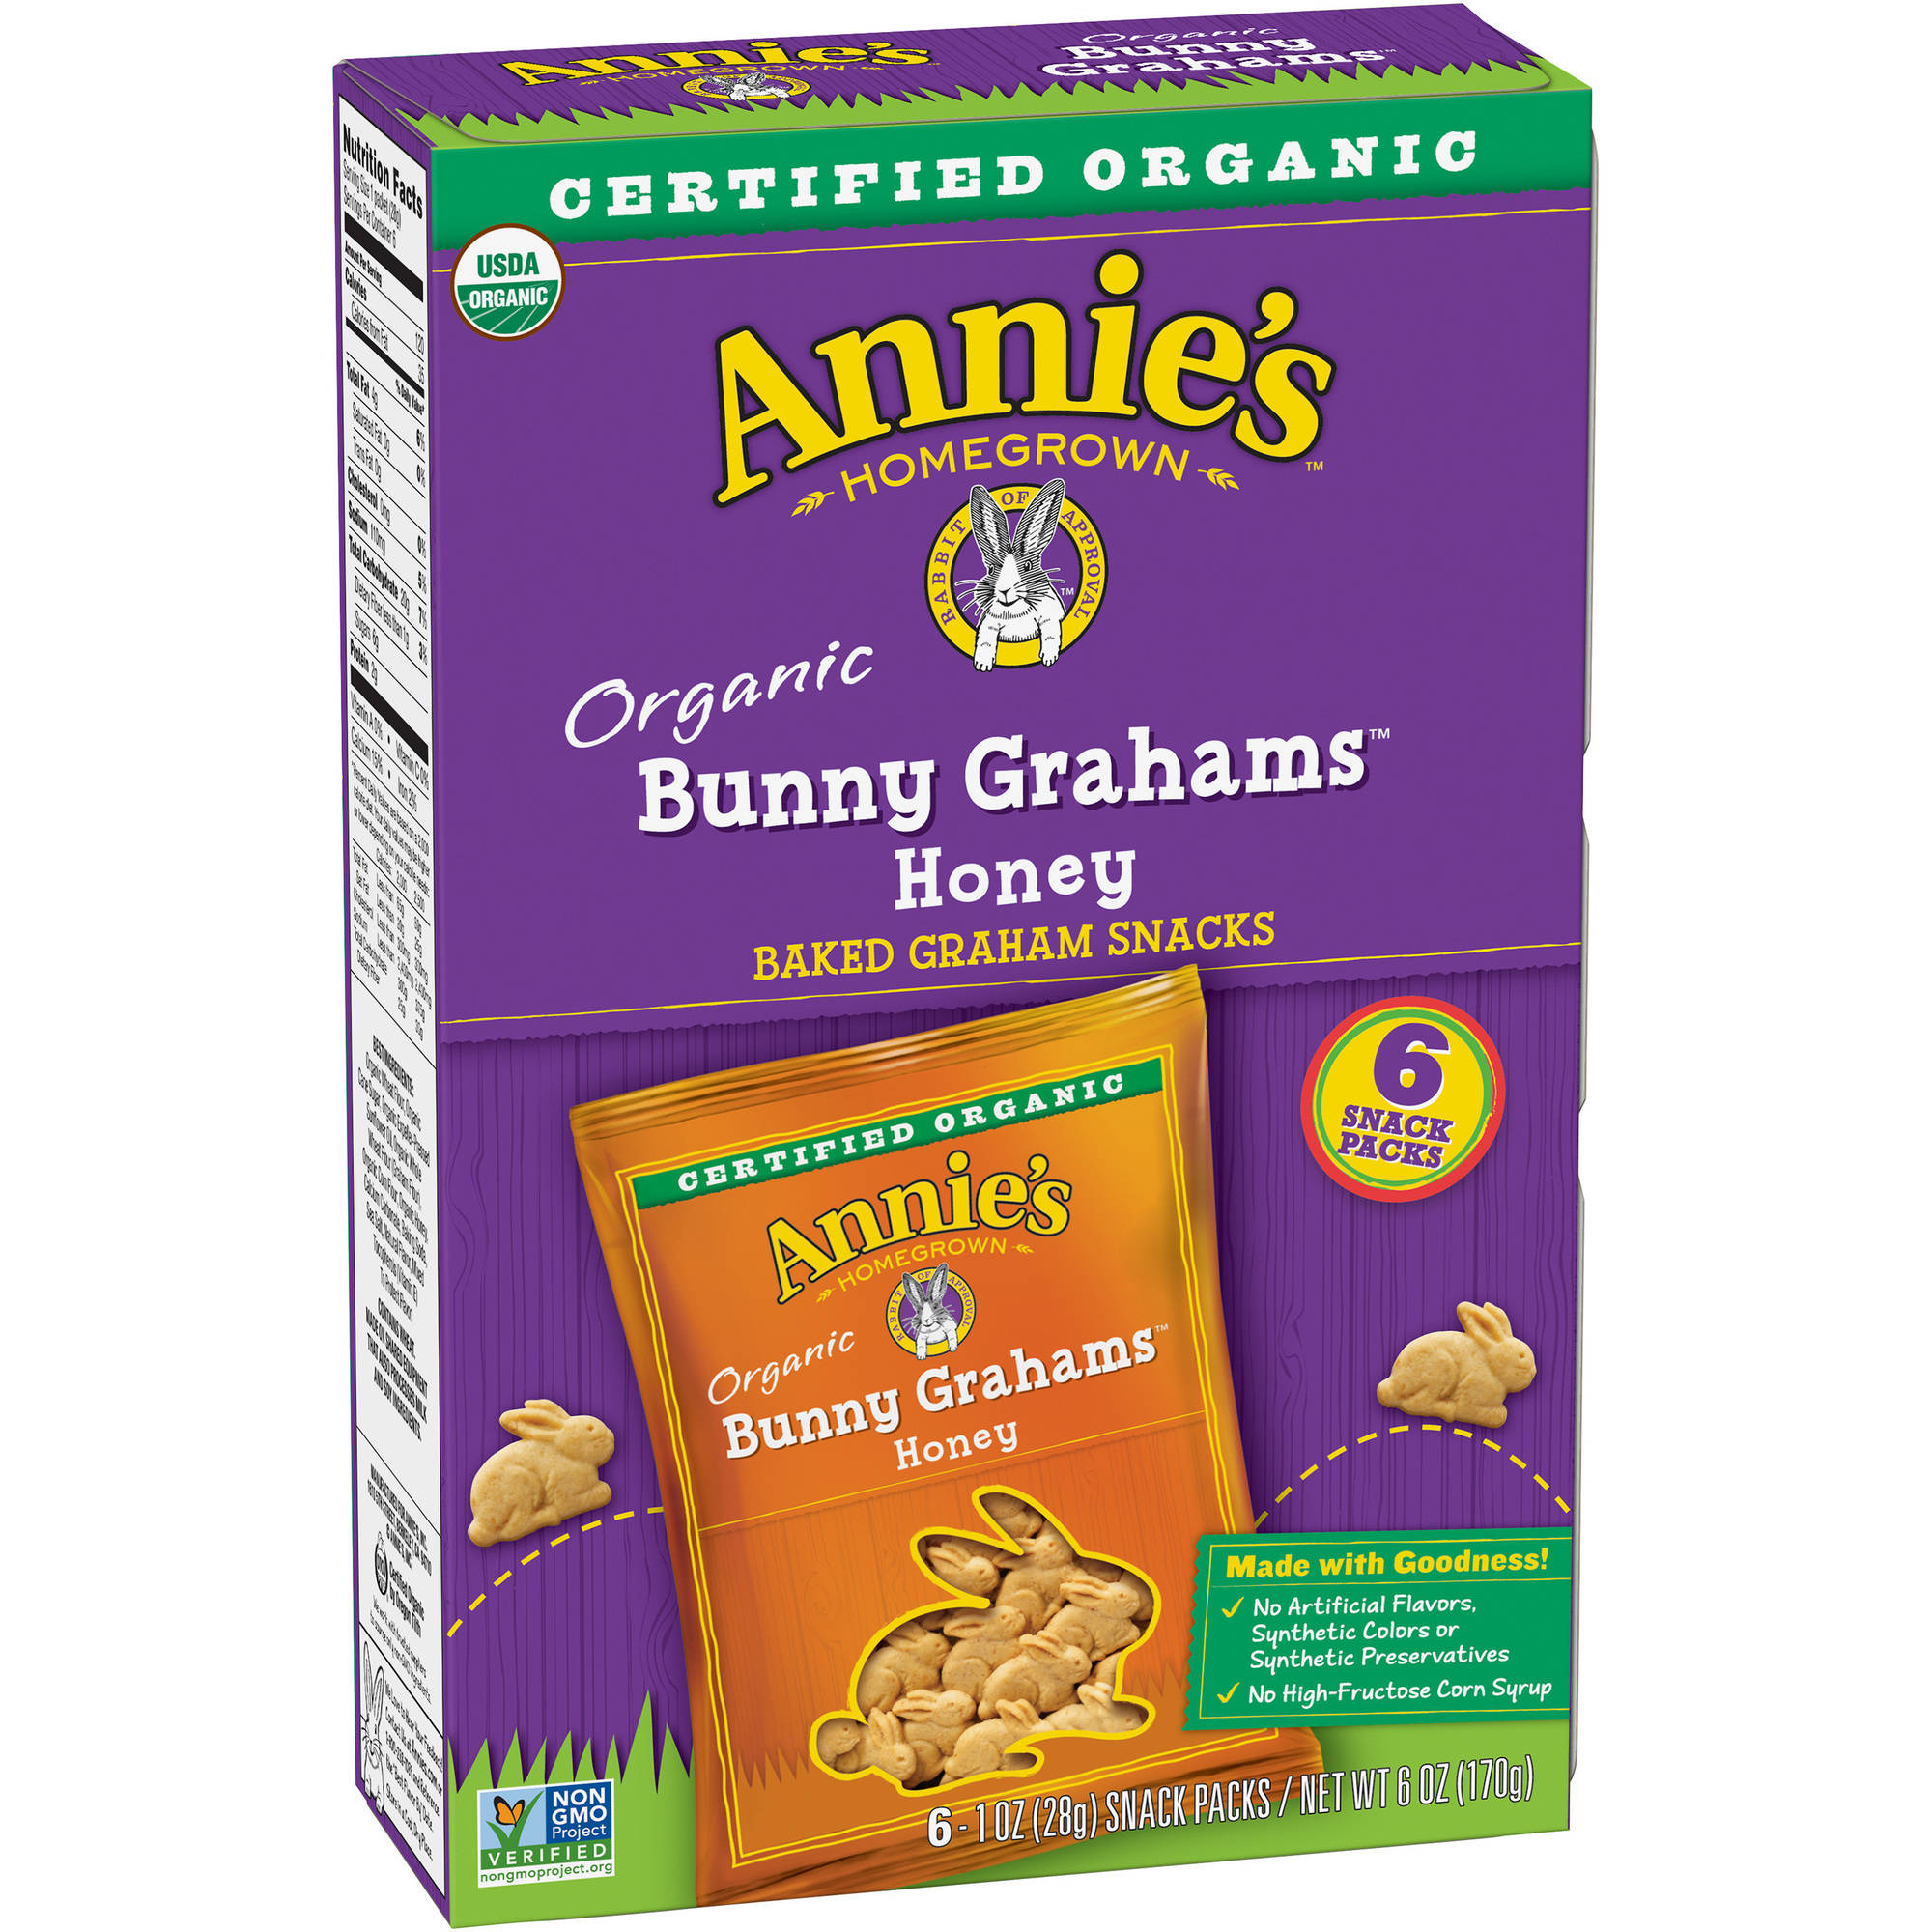 Annie's Homegrown Bunny Grahams Honey Whole Grain Graham Snacks, 1 oz, Pack of 6